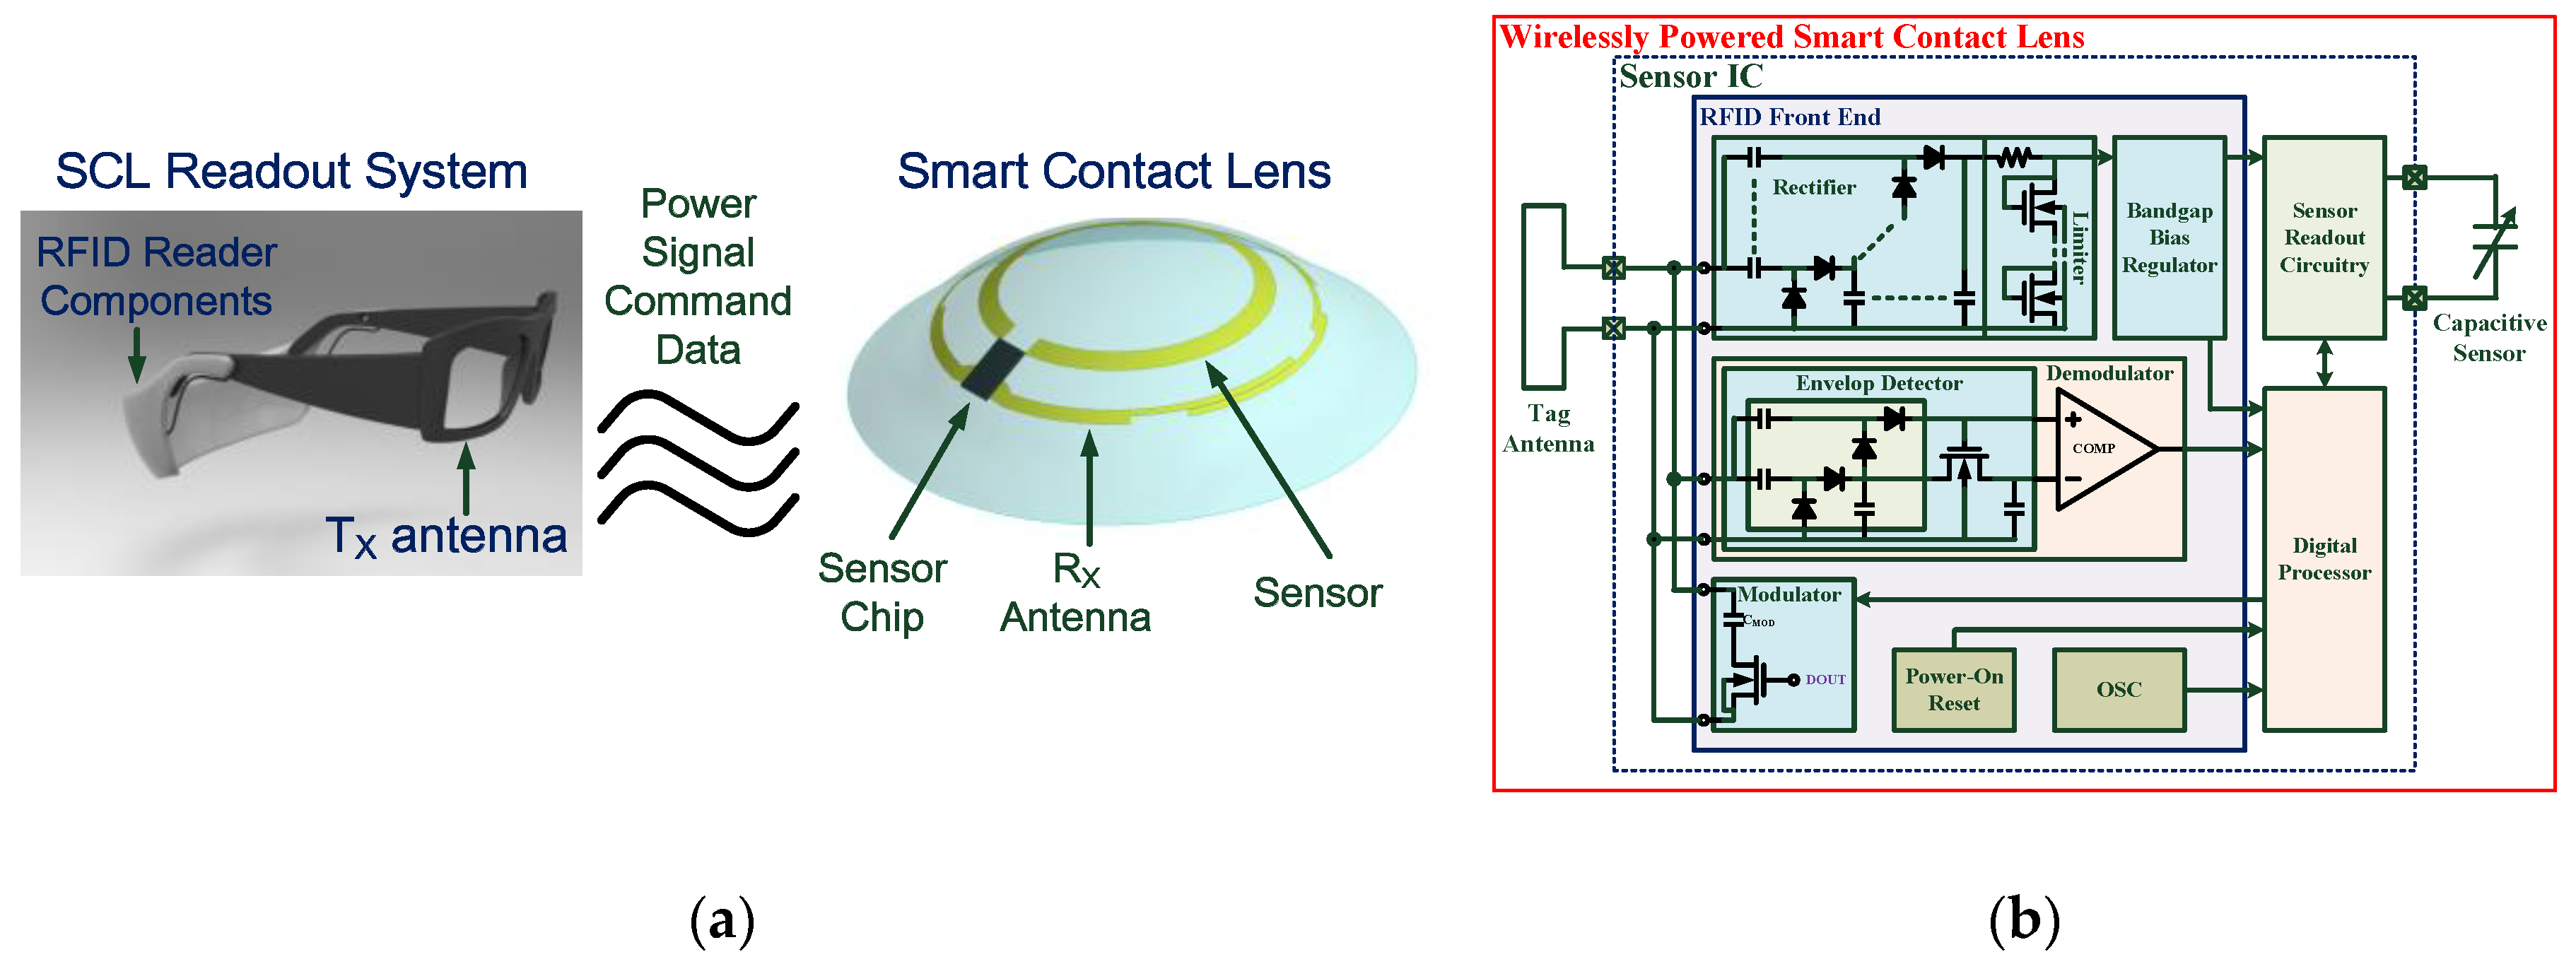 Sensors Free Full Text A Wirelessly Powered Smart Contact Lens Circuits Gt Remote Control Electric Hoist Circuit Diagram 1 17 00108 G001 Figure